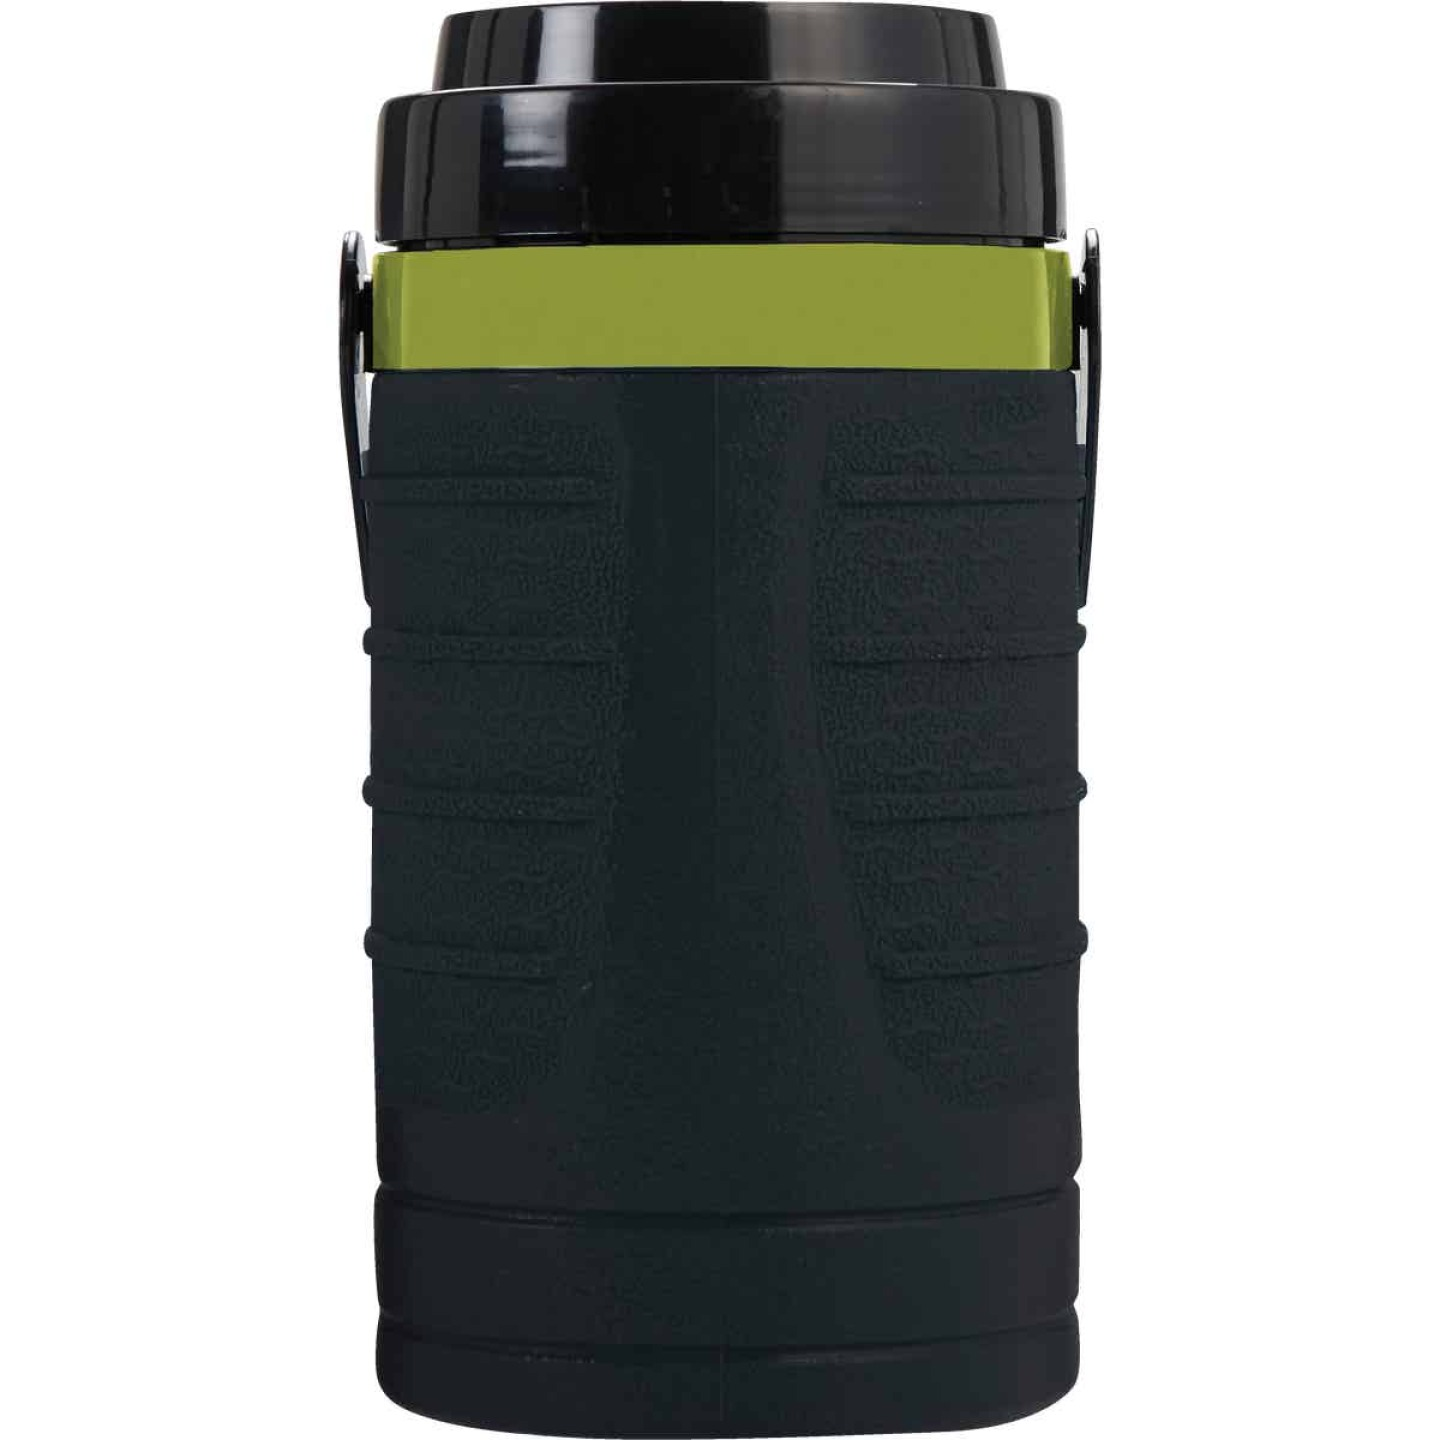 Manna 64 Oz. Black Foam Insulated Bottle Image 1